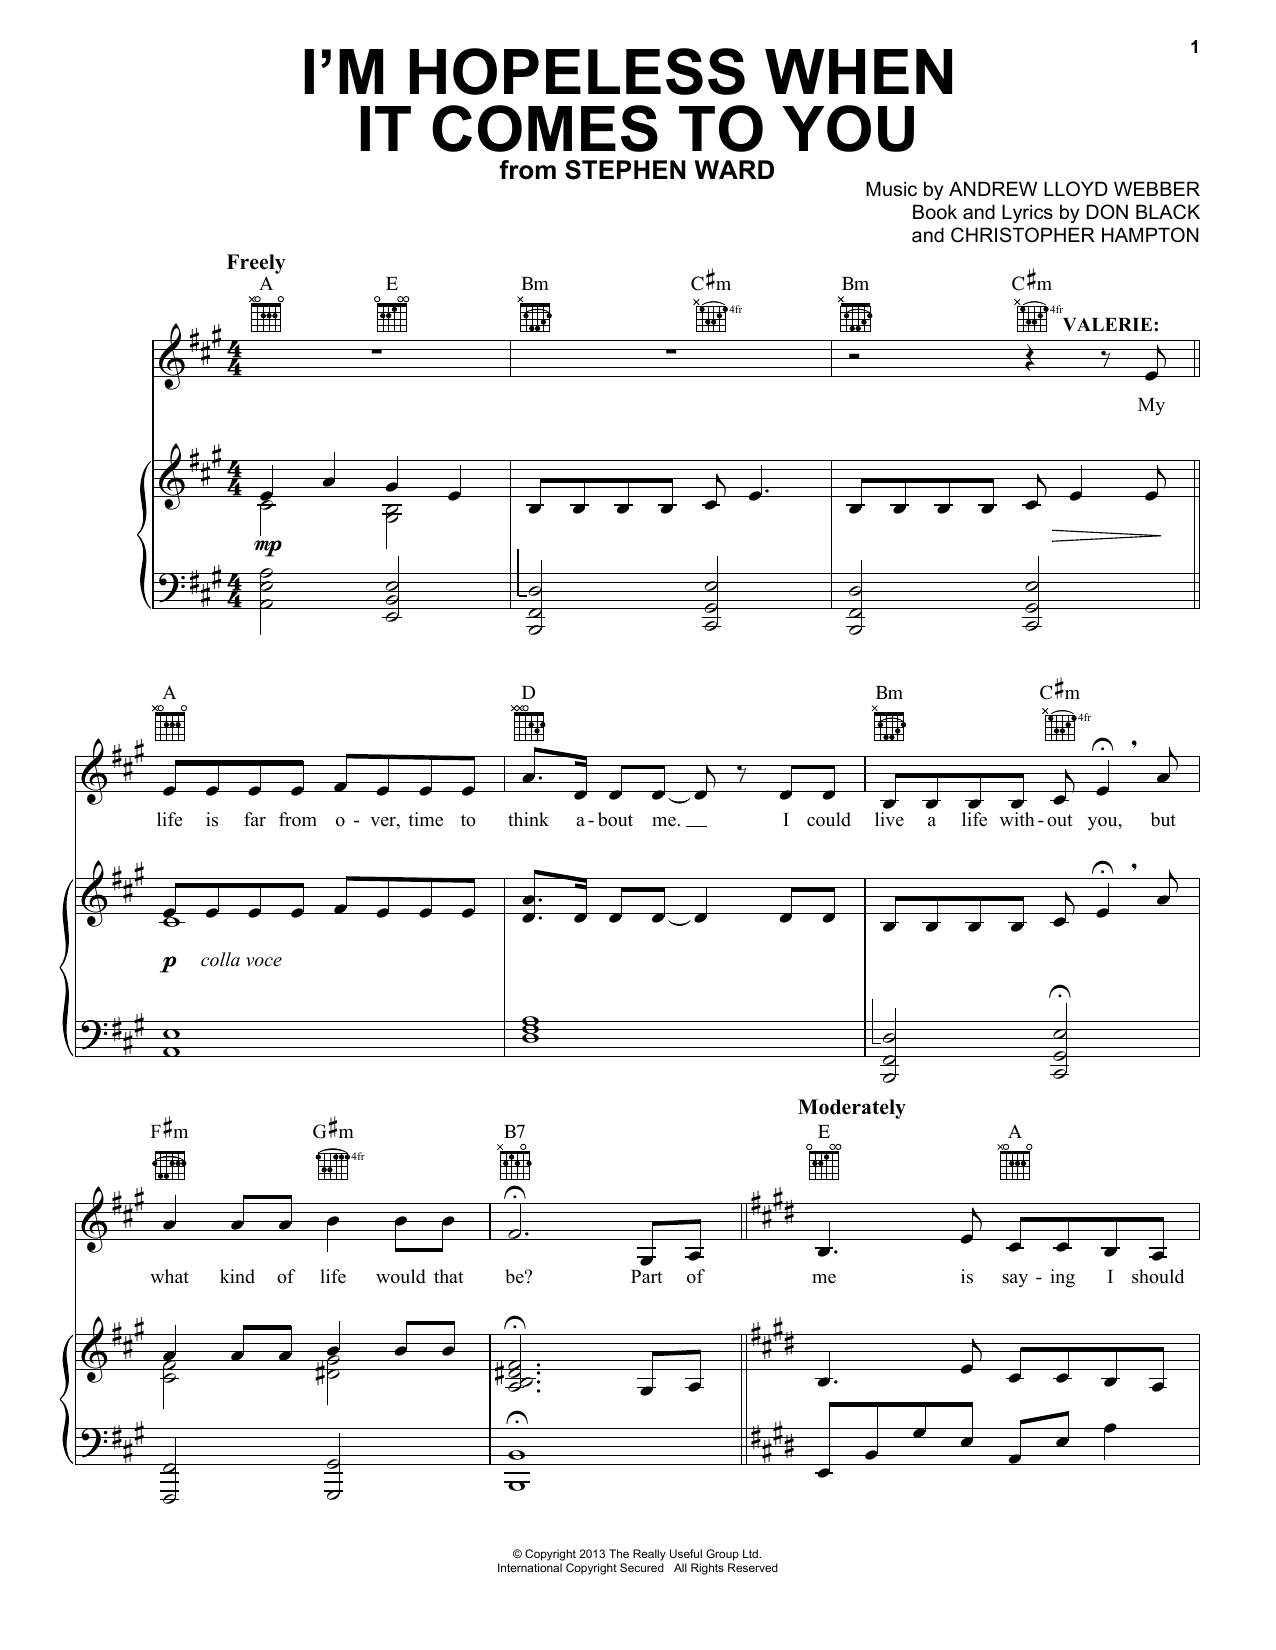 Andrew Lloyd Webber I'm Hopeless When It Comes To You sheet music notes and chords